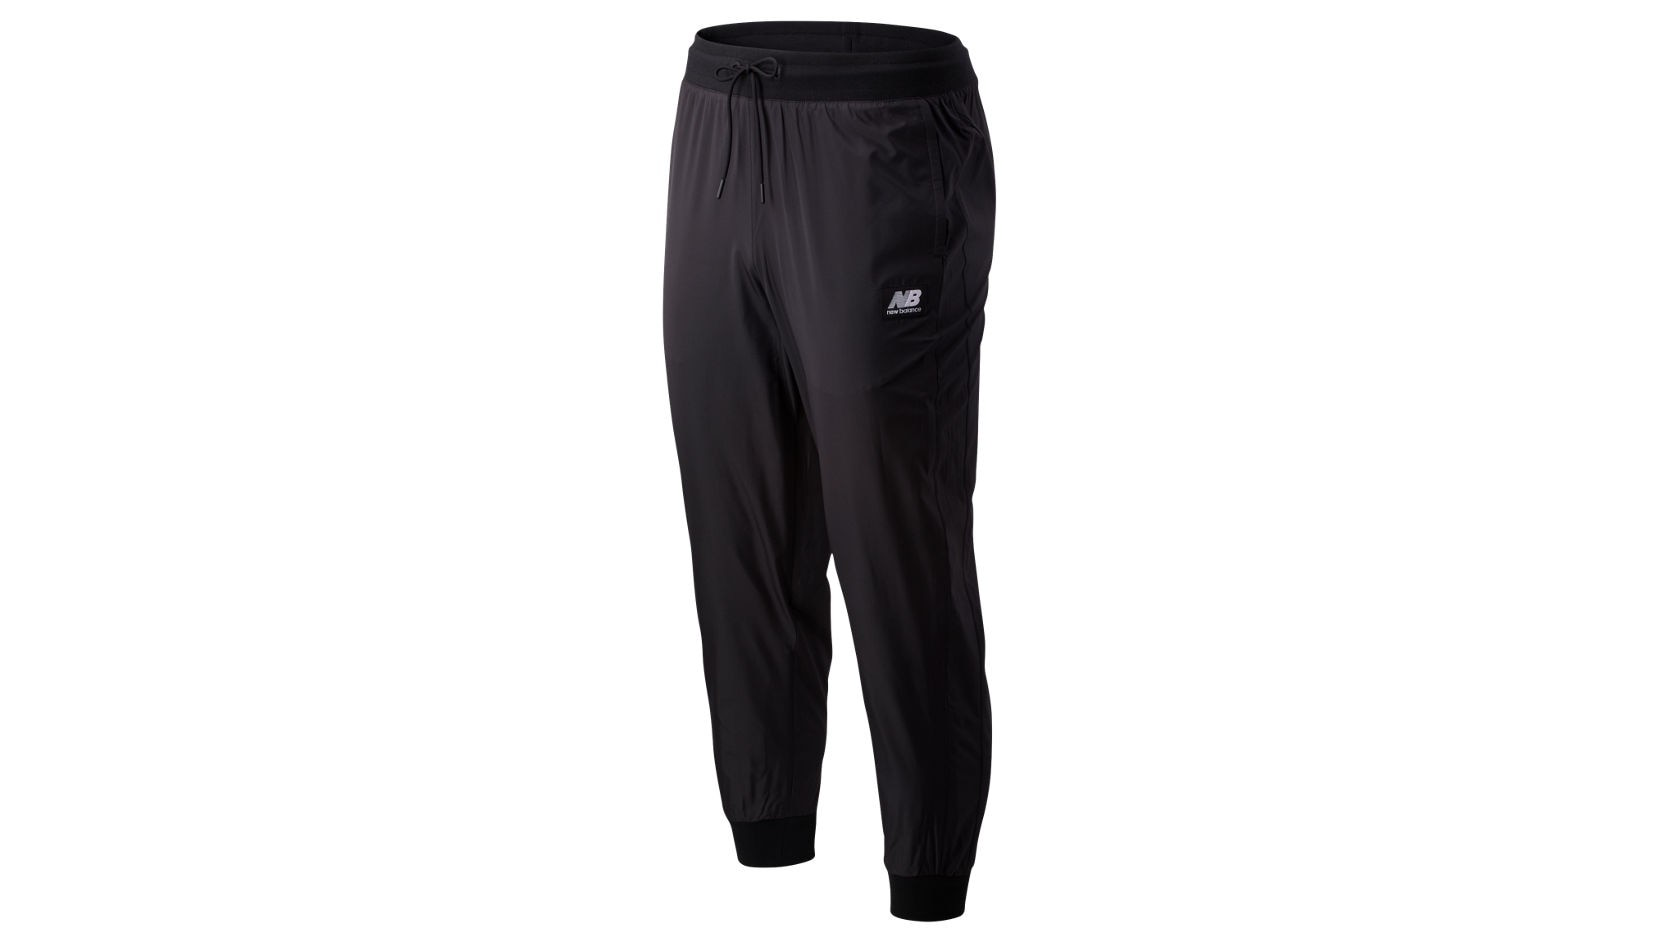 Брюки NB ATHLETICS ARCHIVE RUN PANT фото